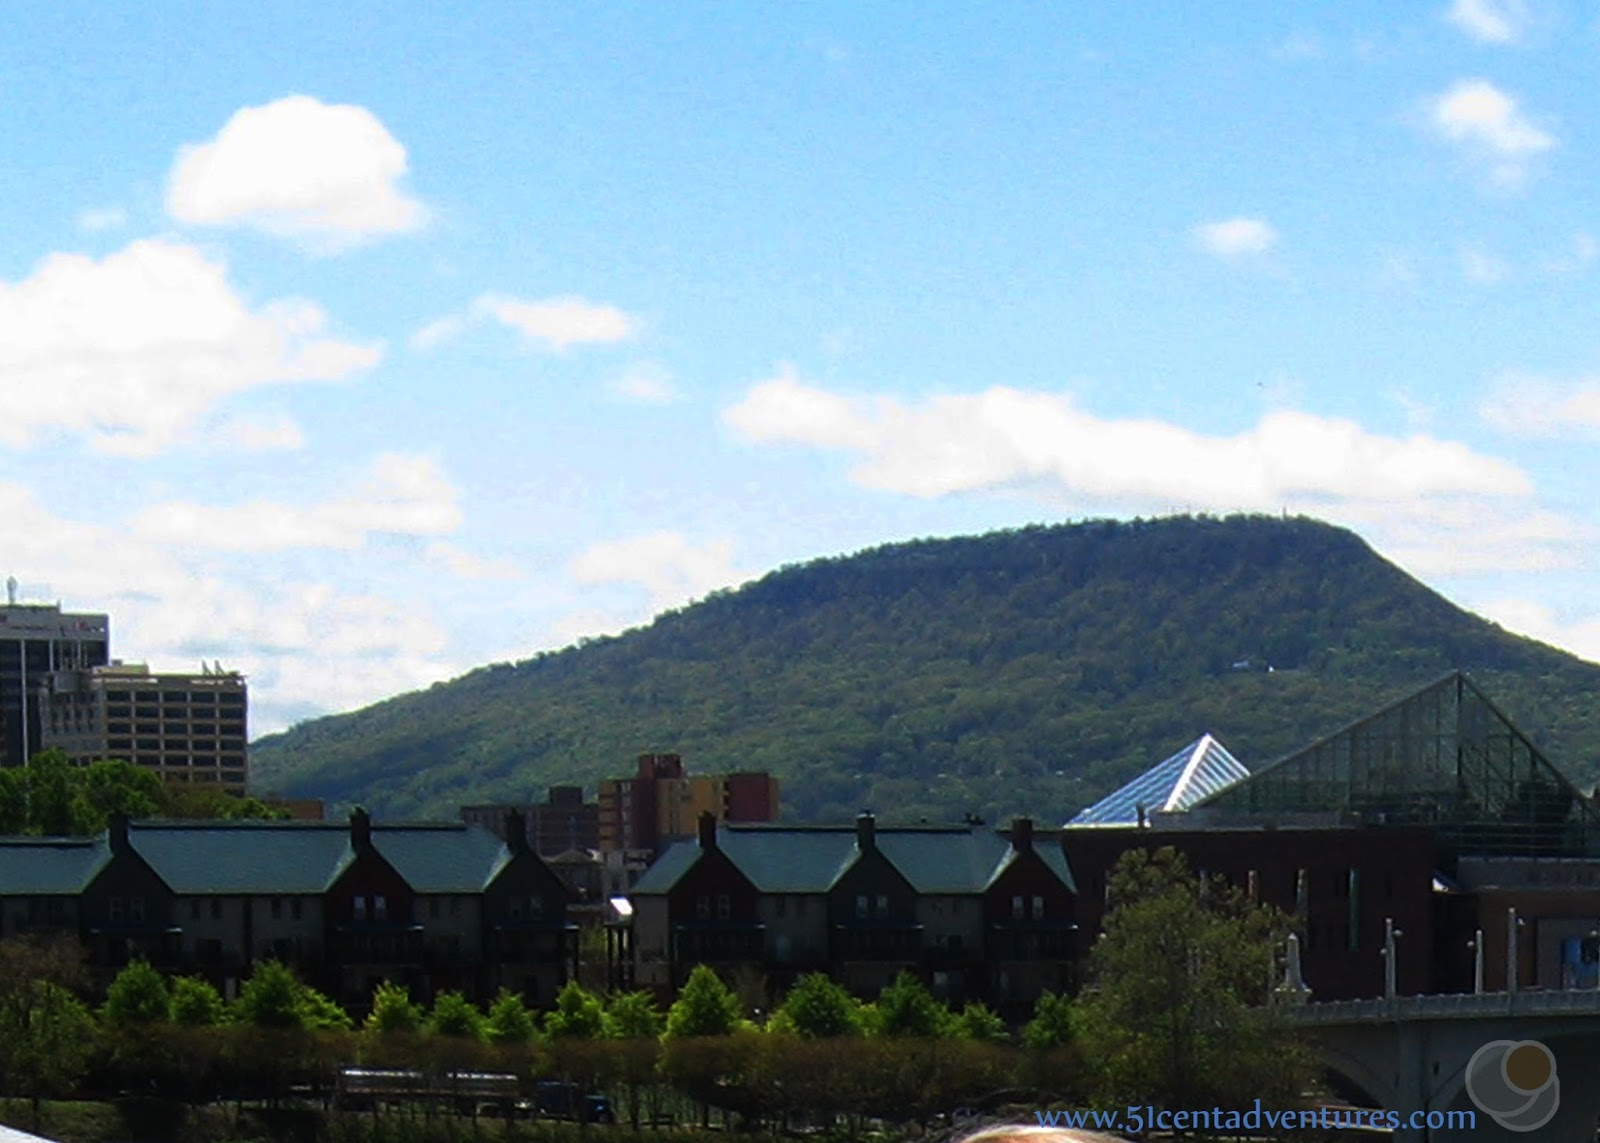 lookout mountain cougars dating site Complex includes 1935 old hunt school, 1912 church, country store, museum, grist mill, blacksmith shop, club demonstration home, plus late 1800s boyd house structures dating from 1880s to.